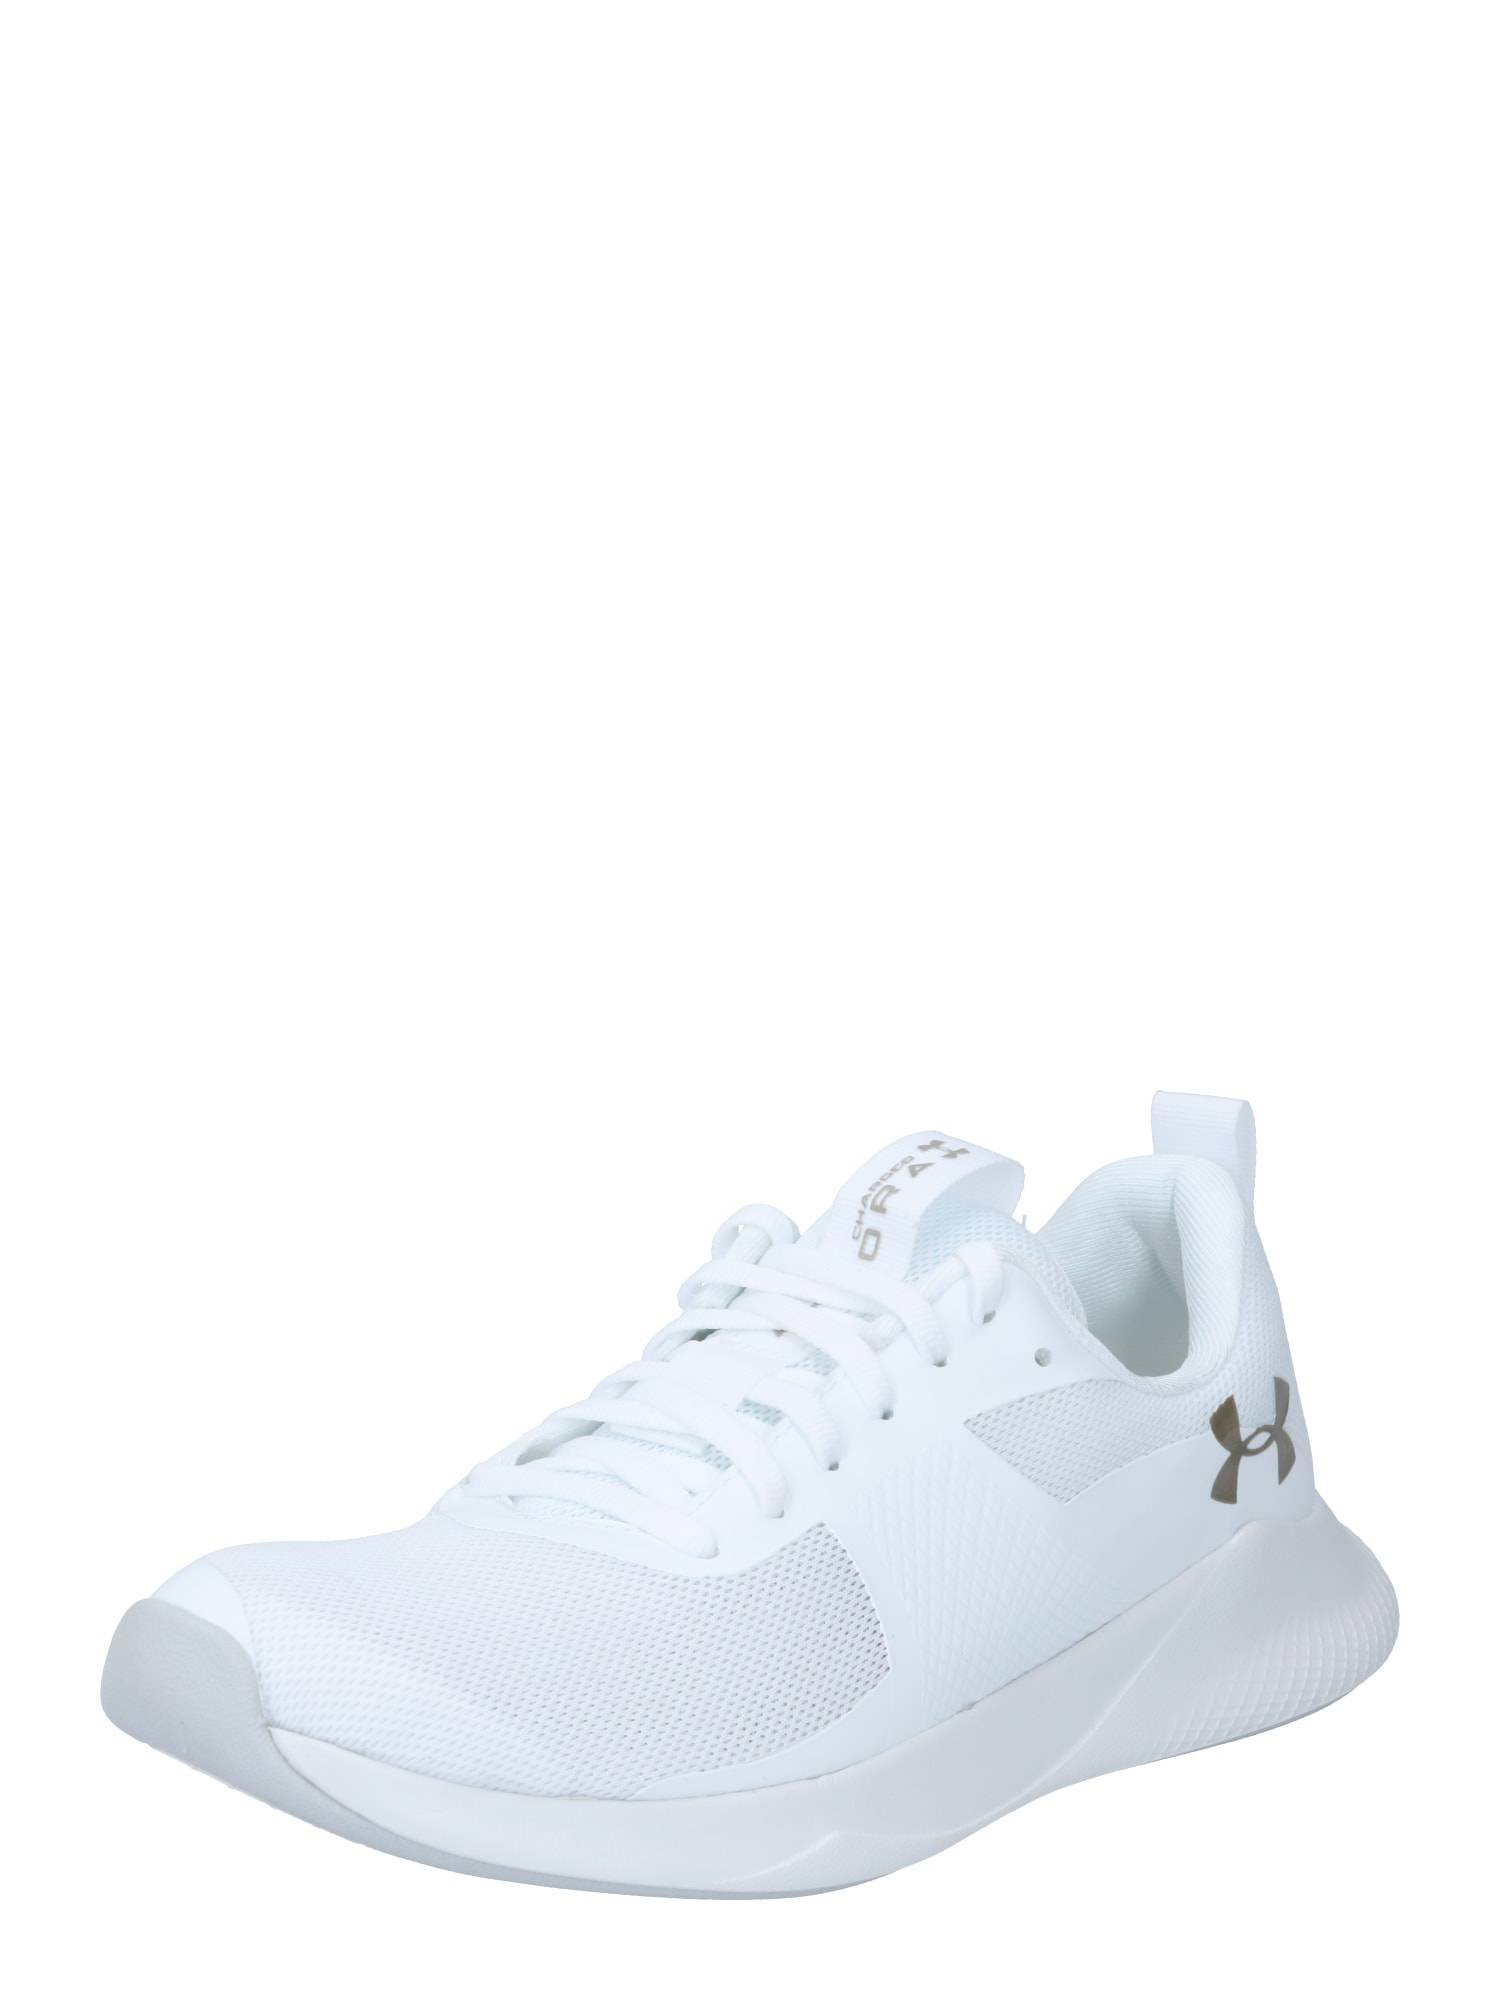 UNDER ARMOUR Chaussure de sport 'UA W Charged Aurora'  - Blanc - Taille: 8 - female